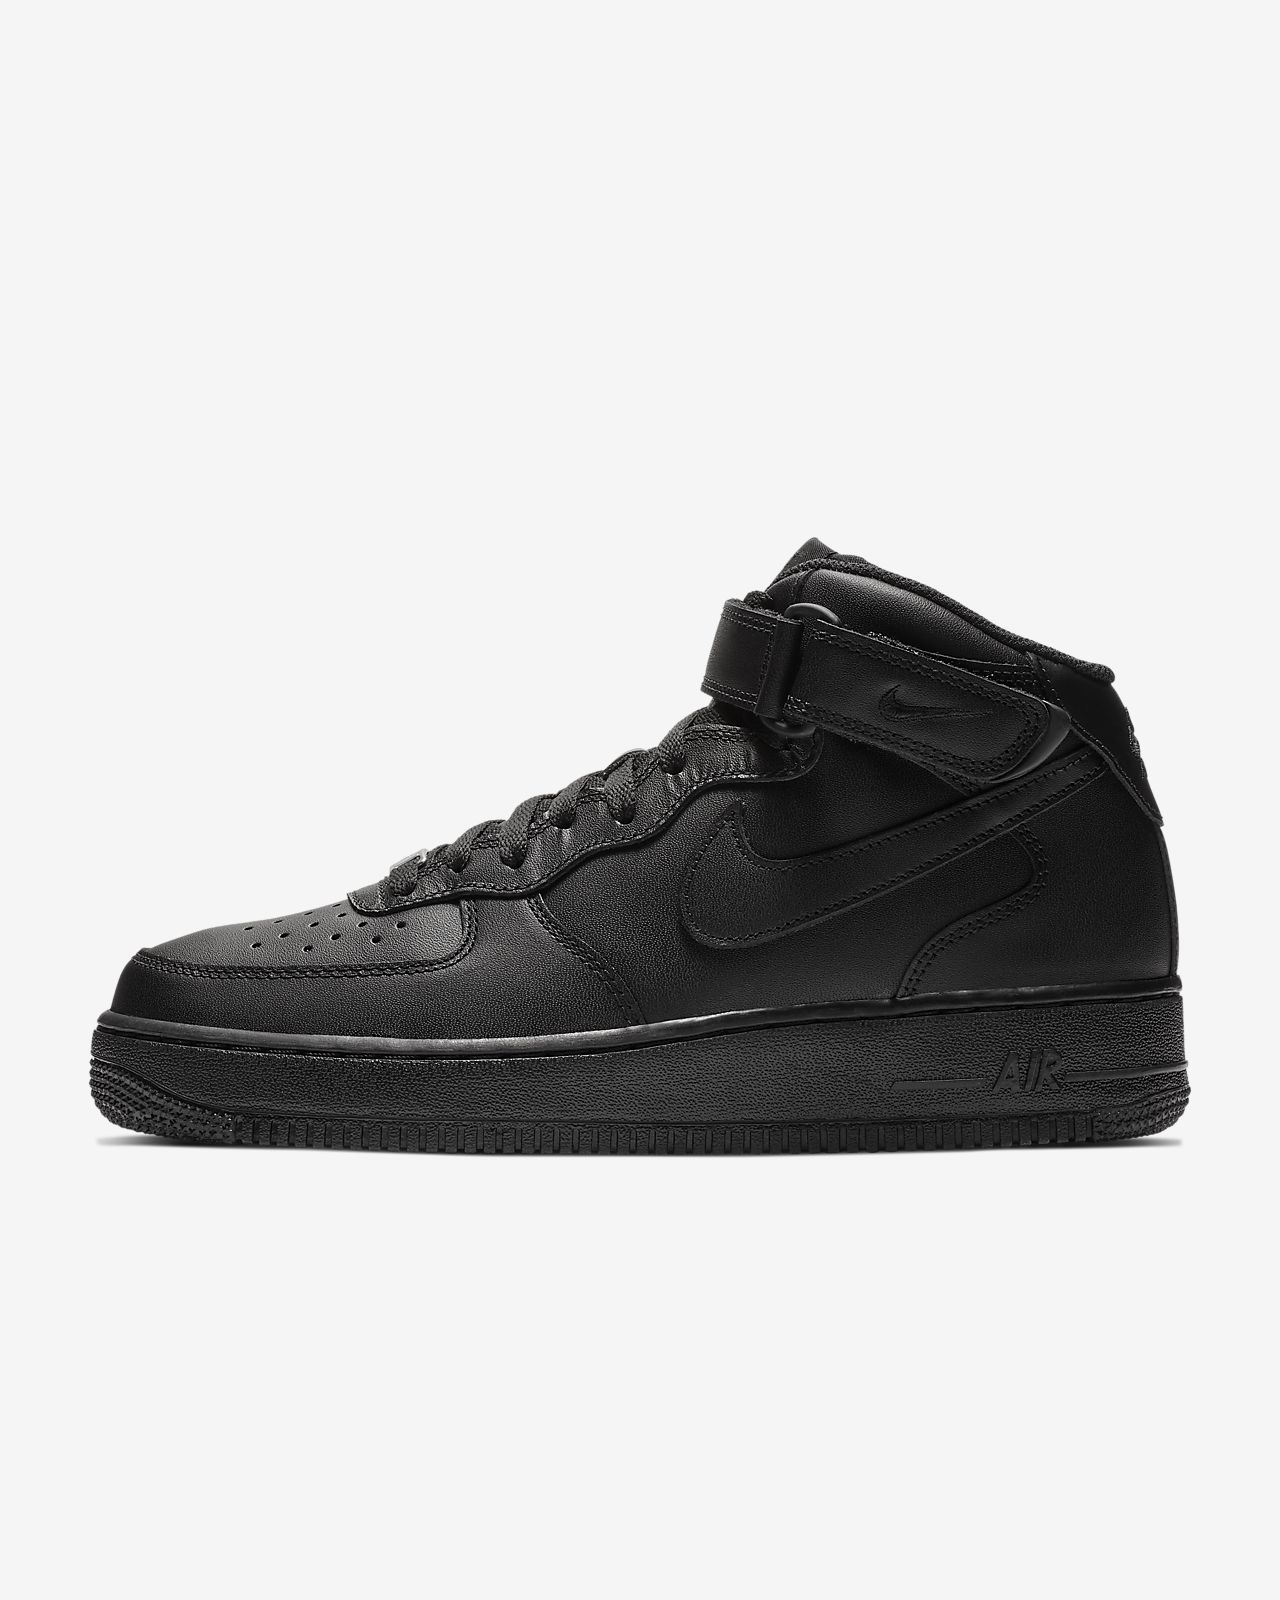 Kicks Deals – Official Website Nike Air Force 1 Mid Black